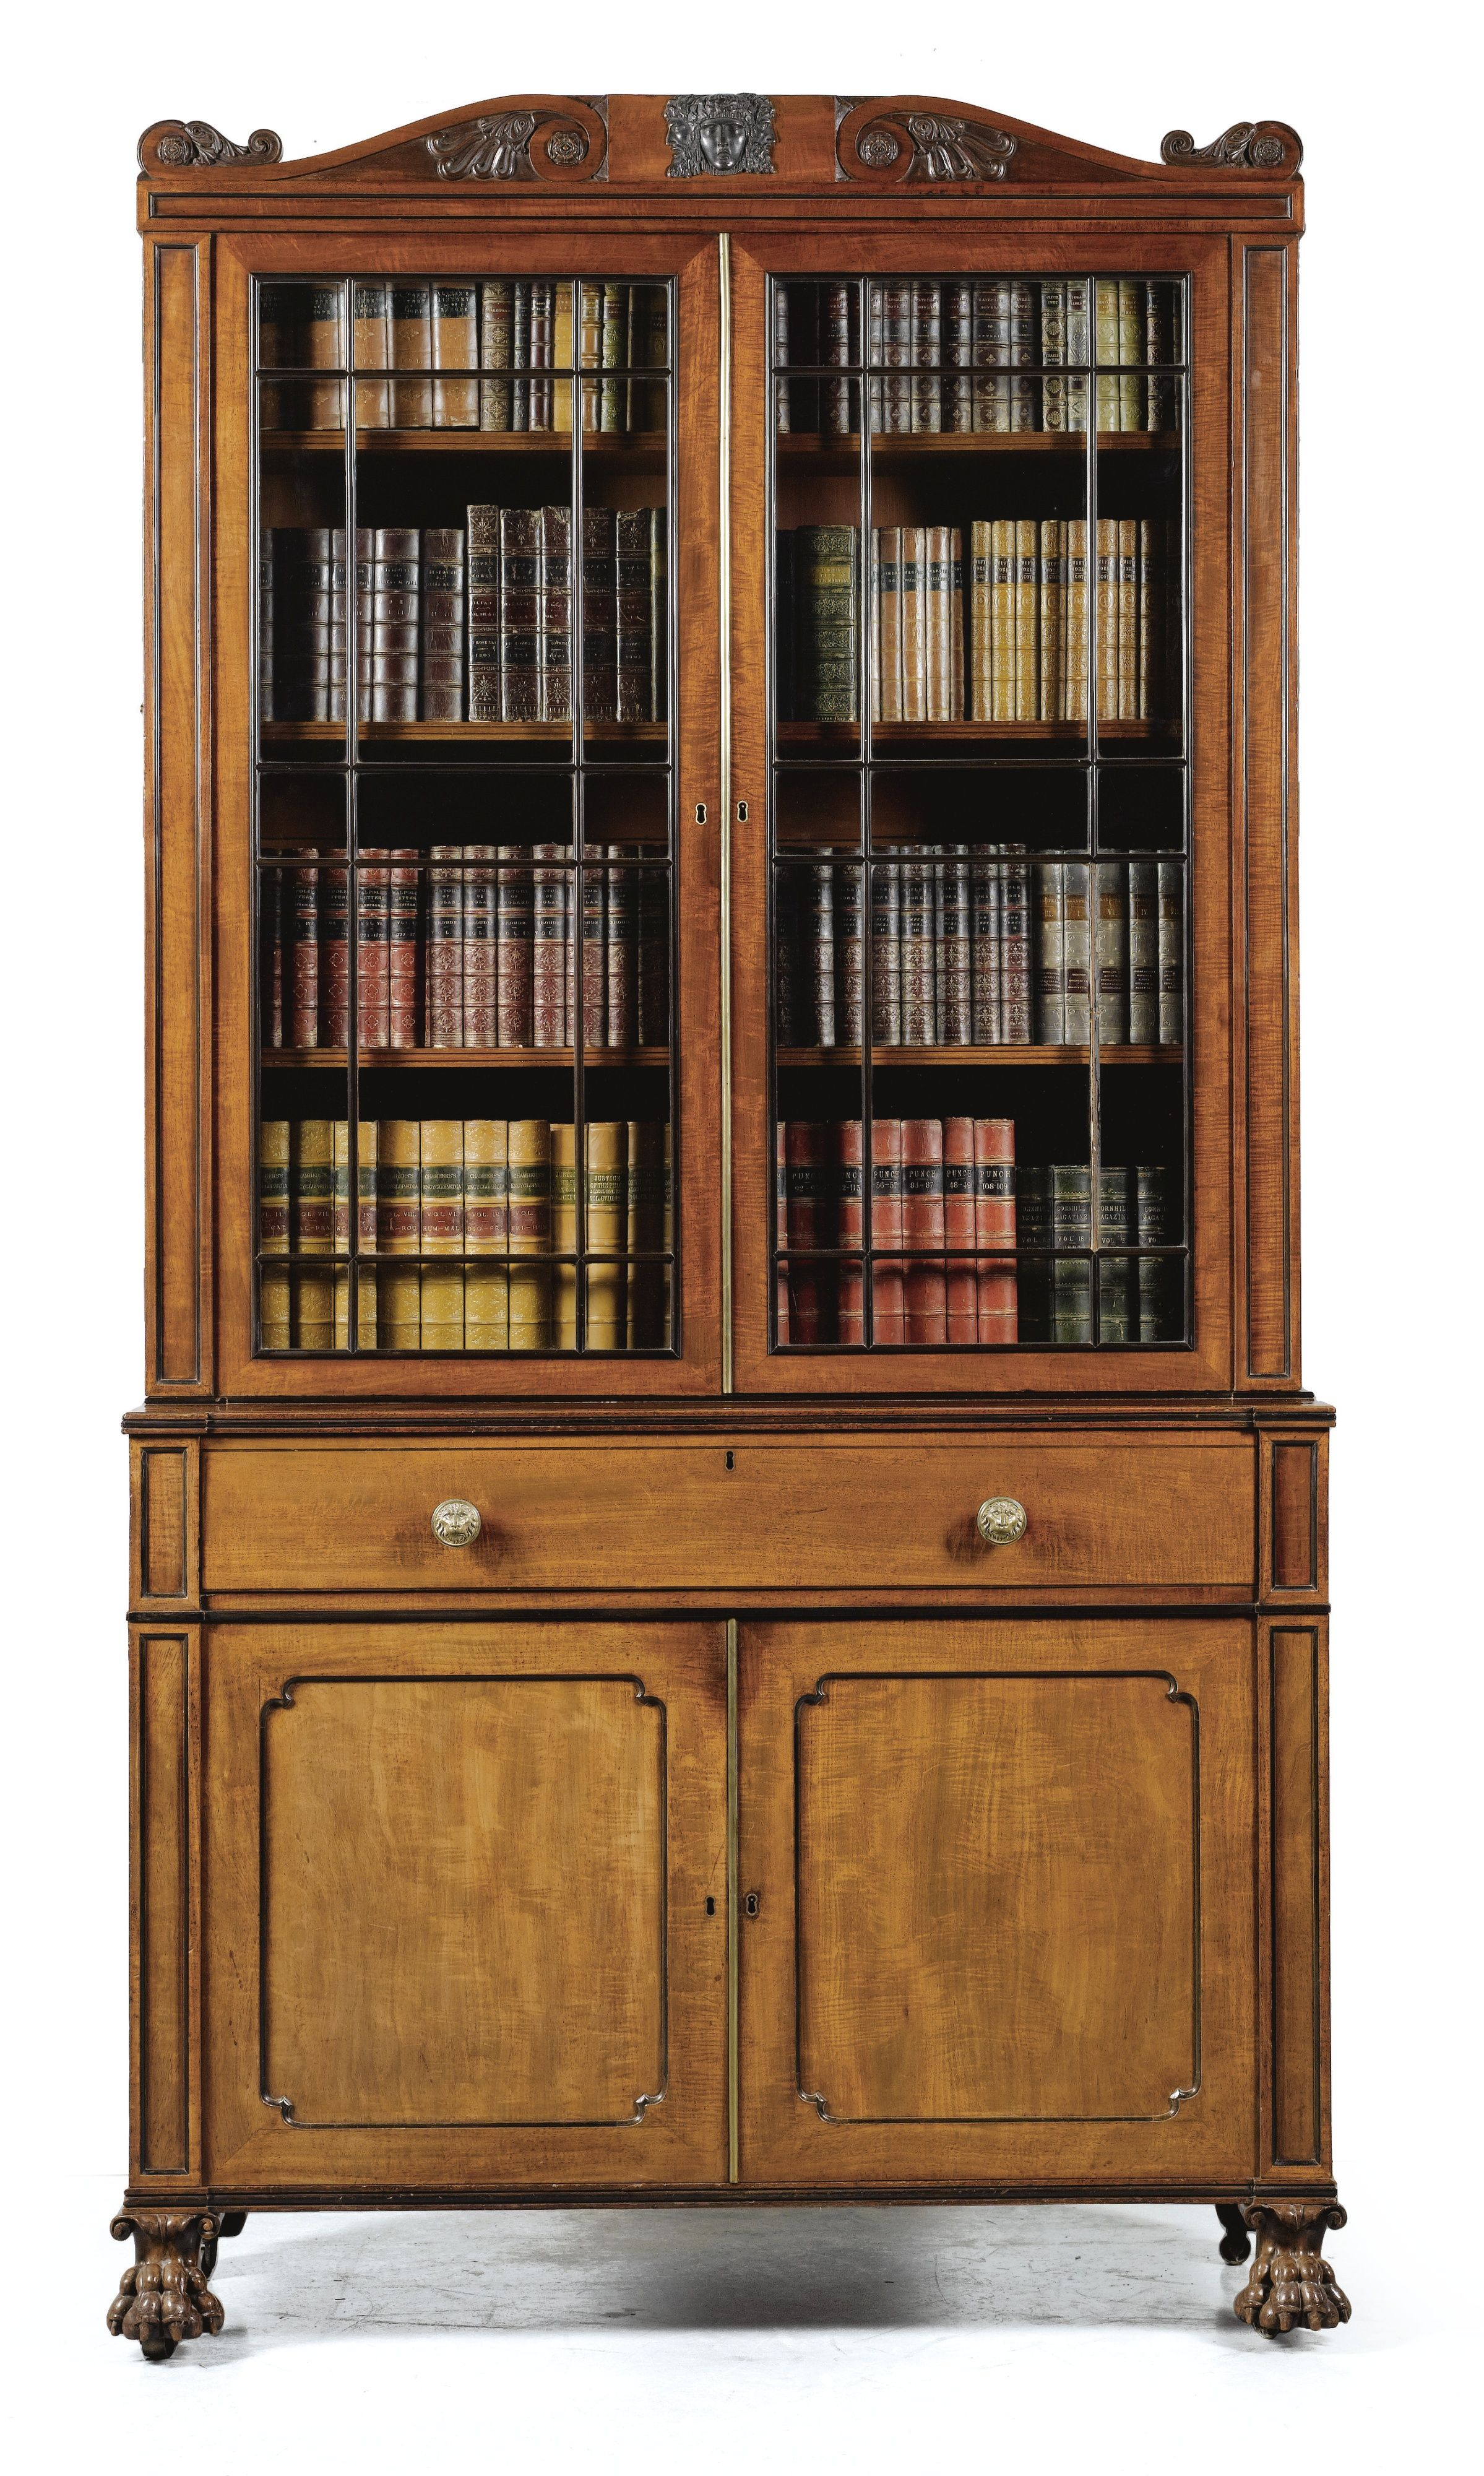 highland item products combination mount with court bookcases circular carmel bookcase number open